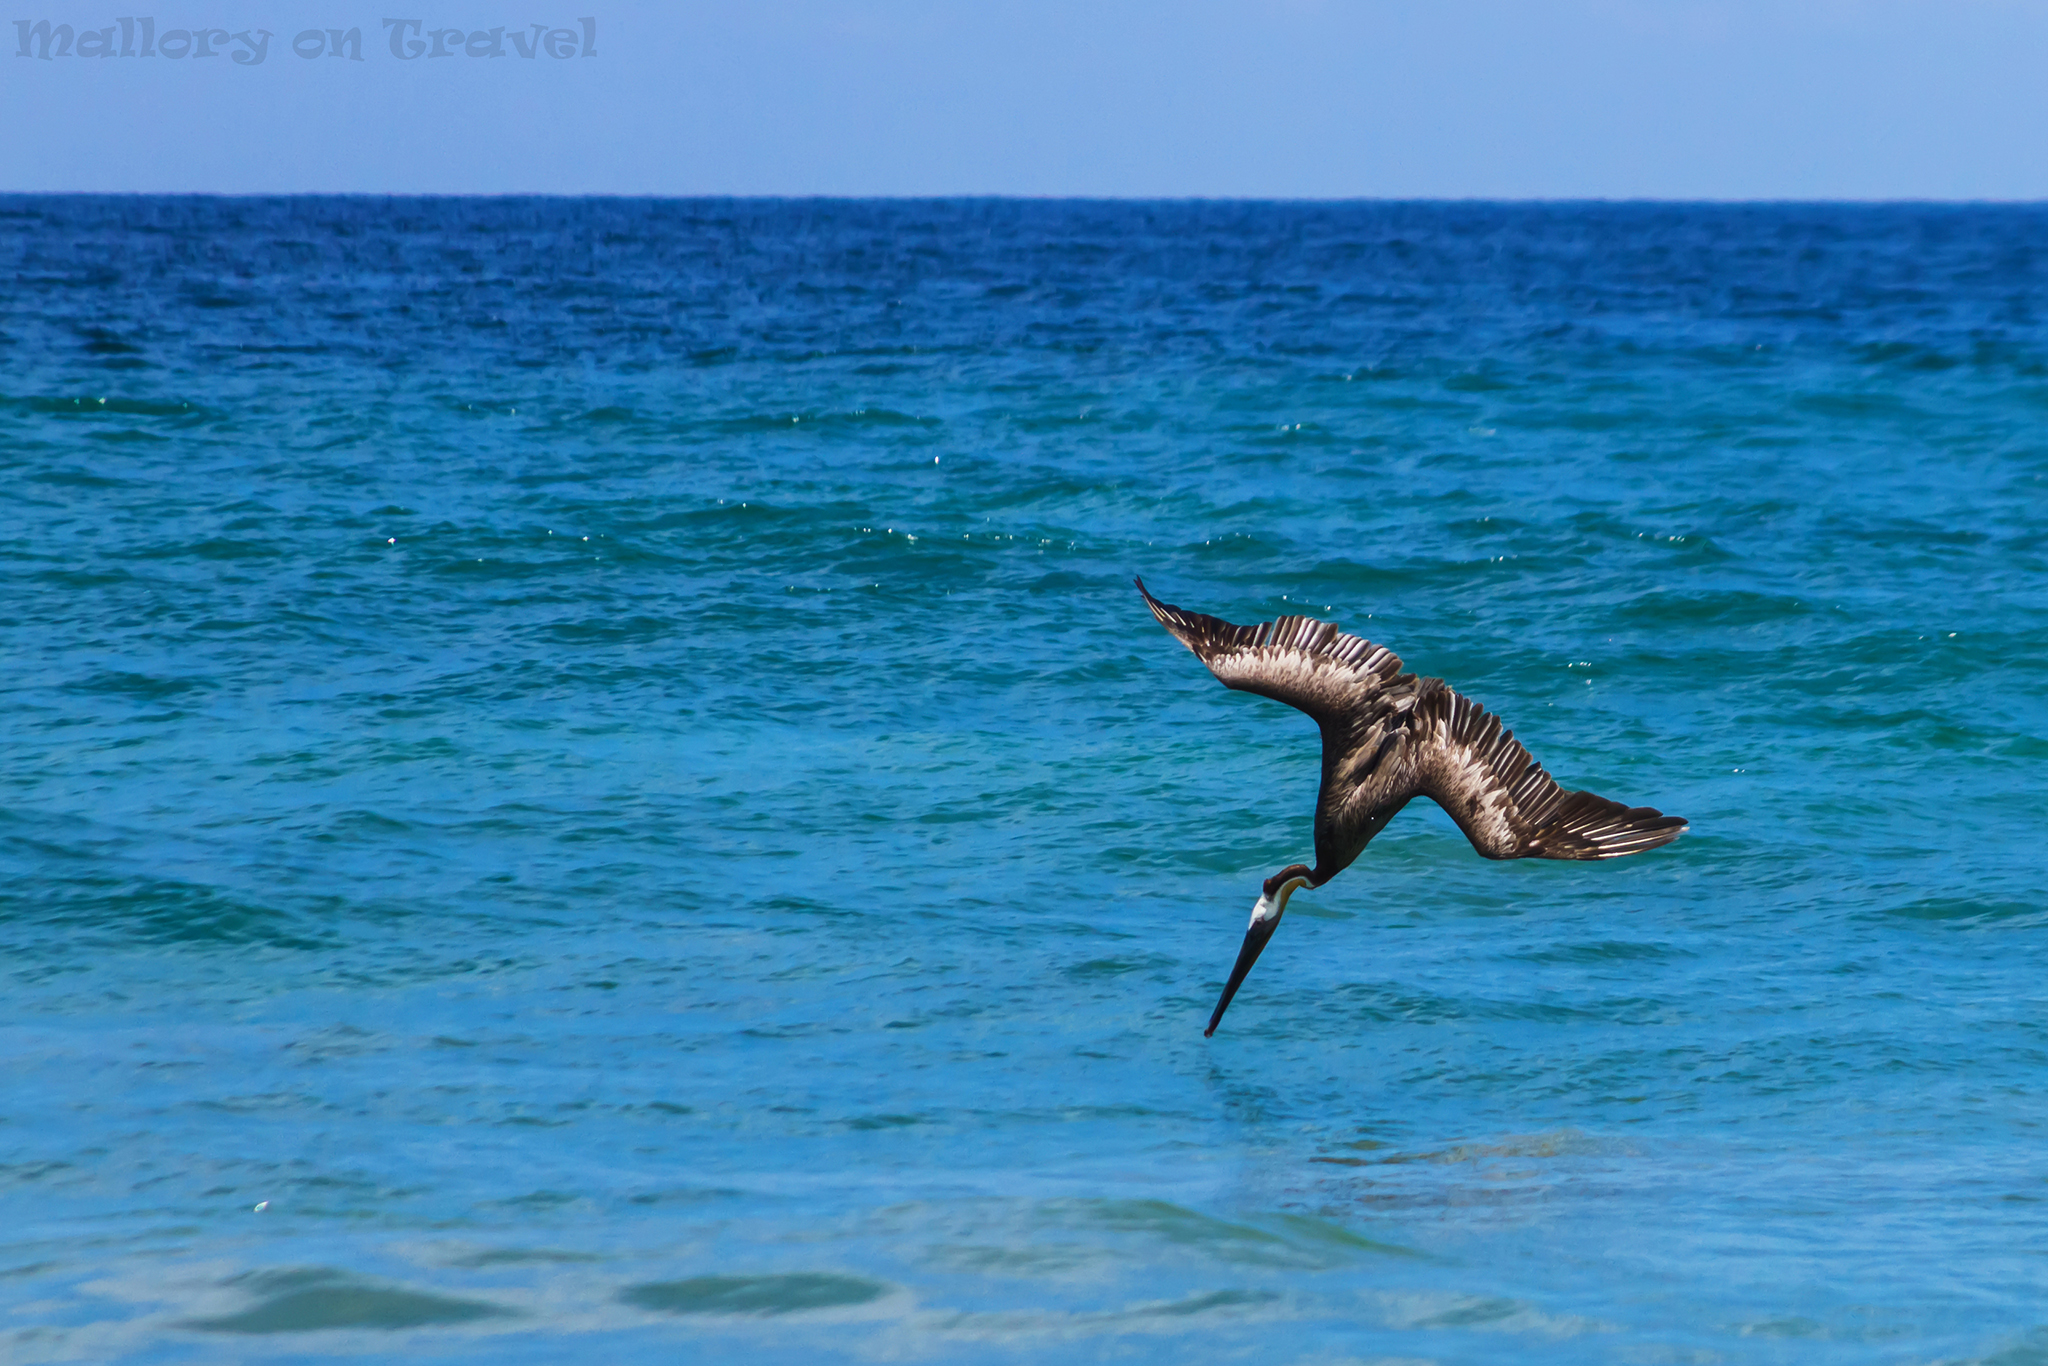 brown pelicans dive bombers of the sea photo essay mallory on  brown pelicans diving and fishing off the beach of san pancho riviera nayarit puerto